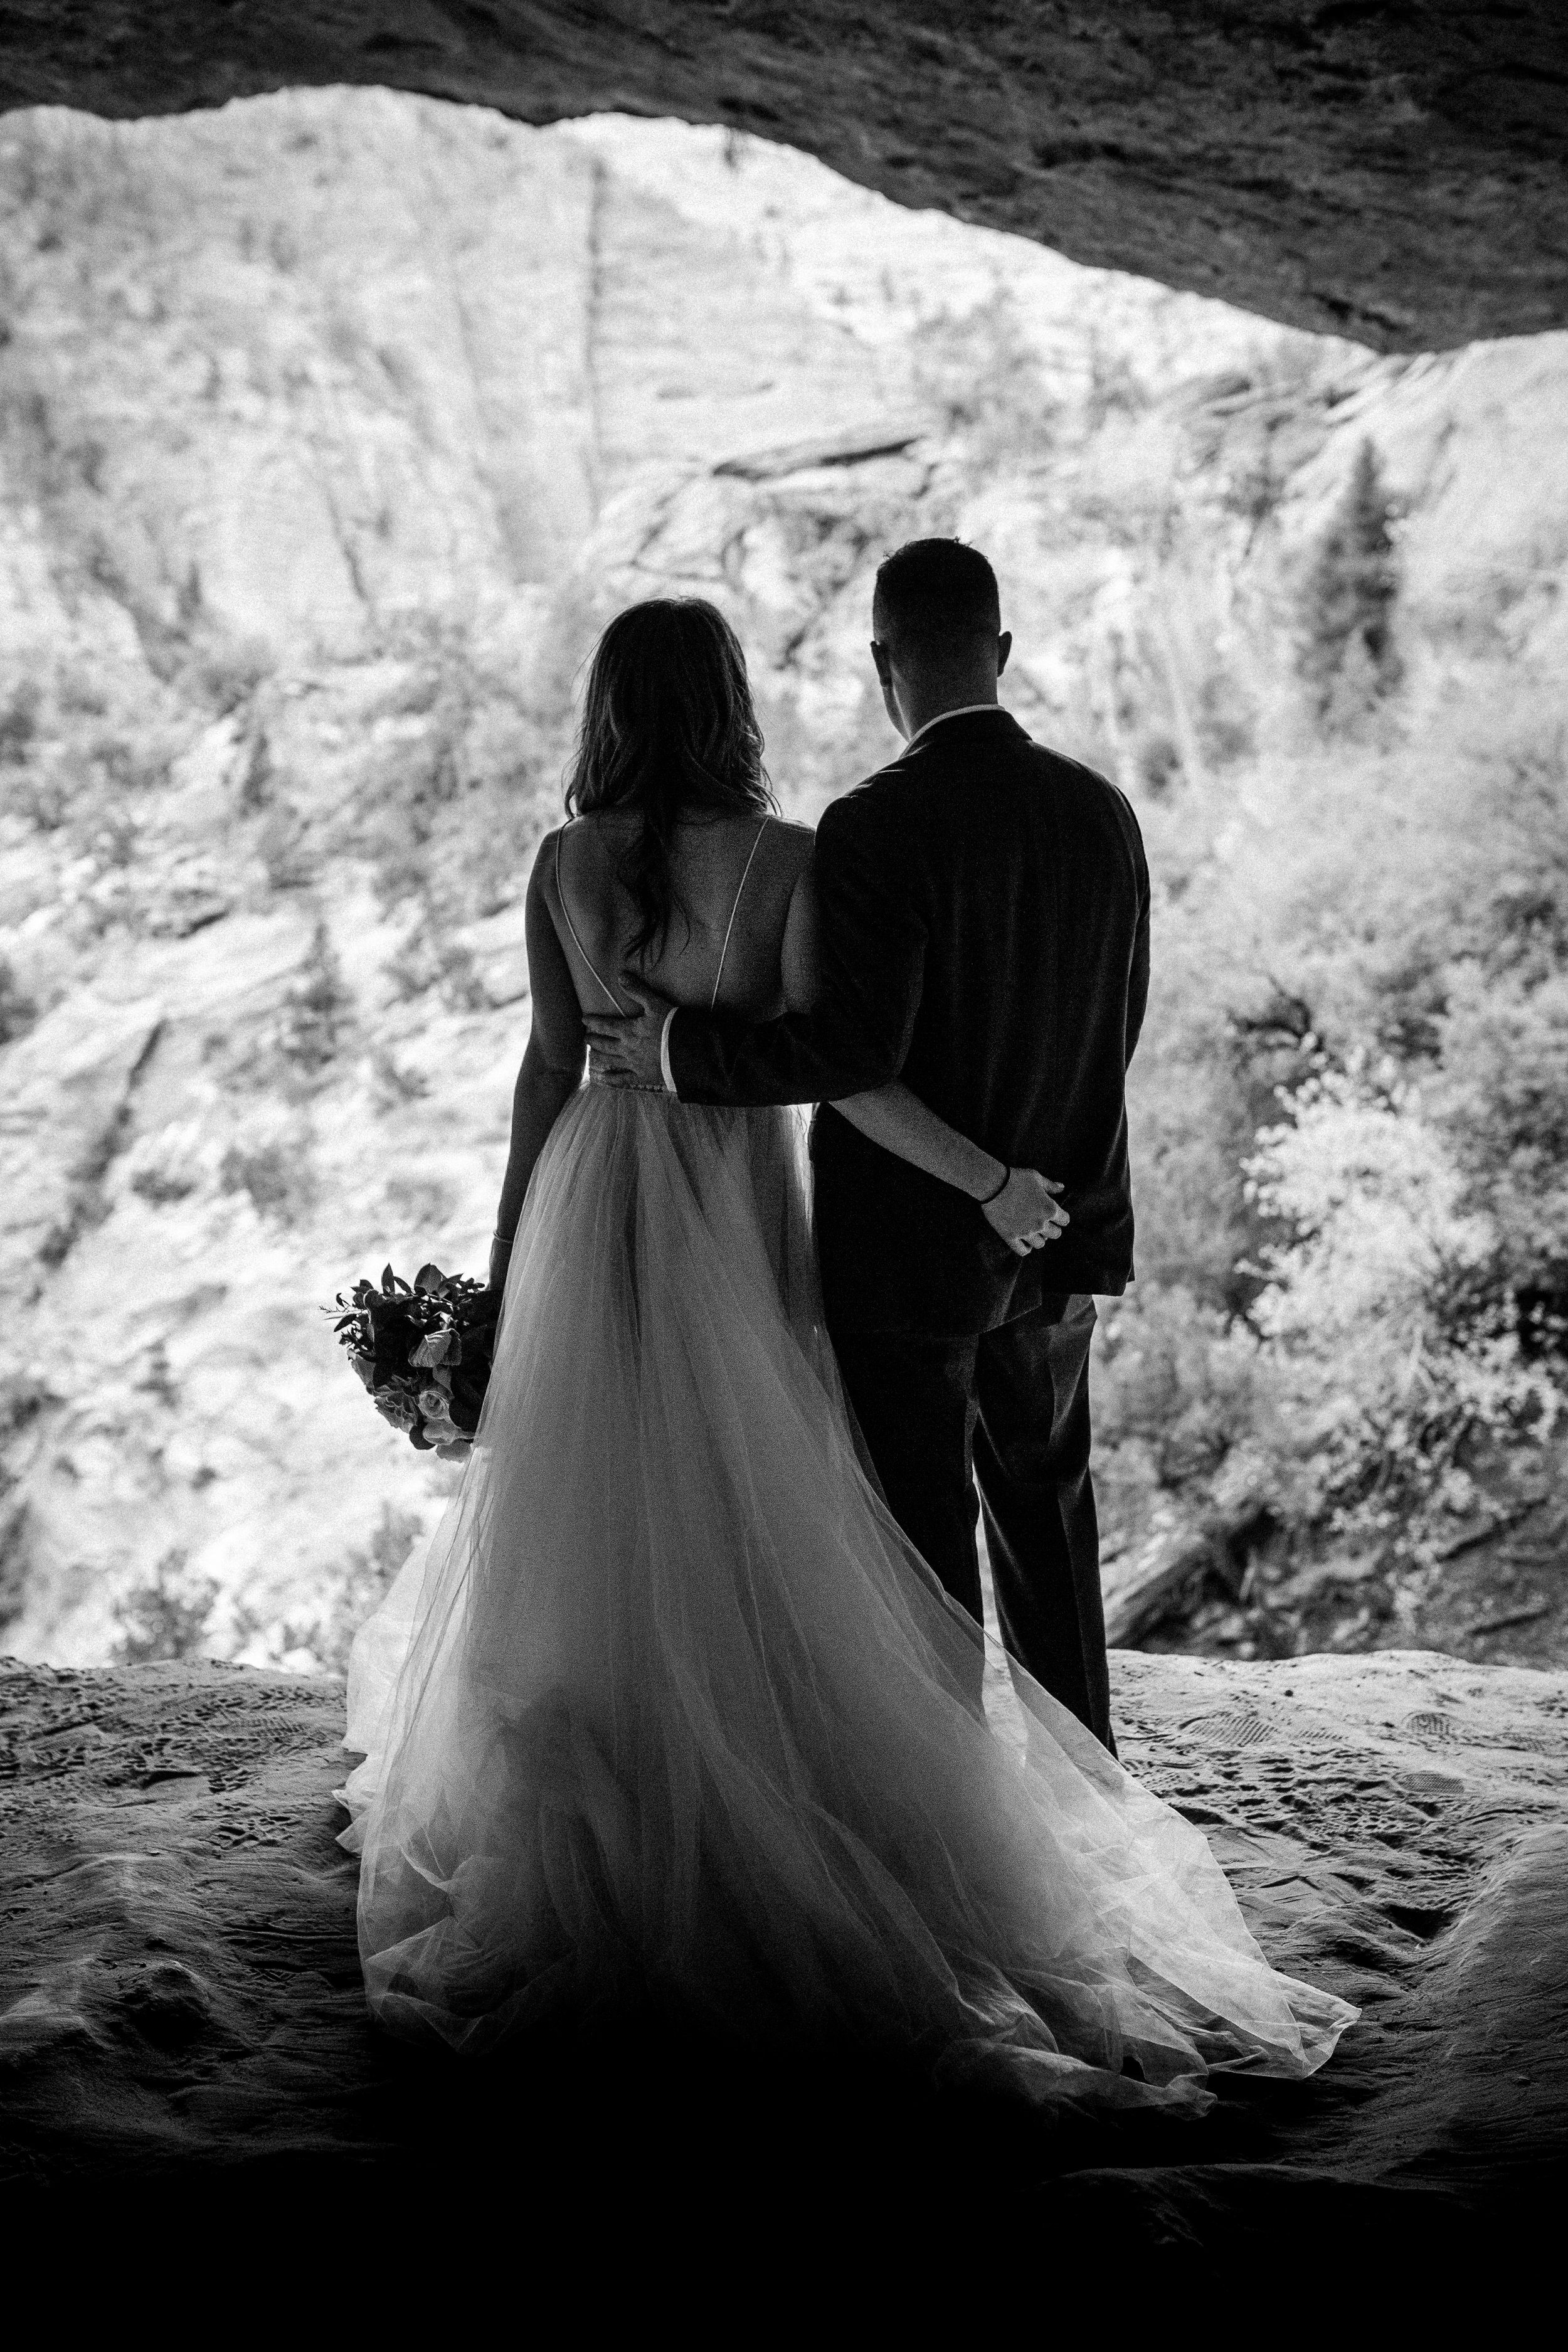 nicole-daacke-photography-zion-national-park-elopement-photographer-canyon-overlook-trail-elope-hiking-adventure-wedding-photos-fall-utah-red-rock-canyon-stgeorge-eloping-photographer-35.jpg